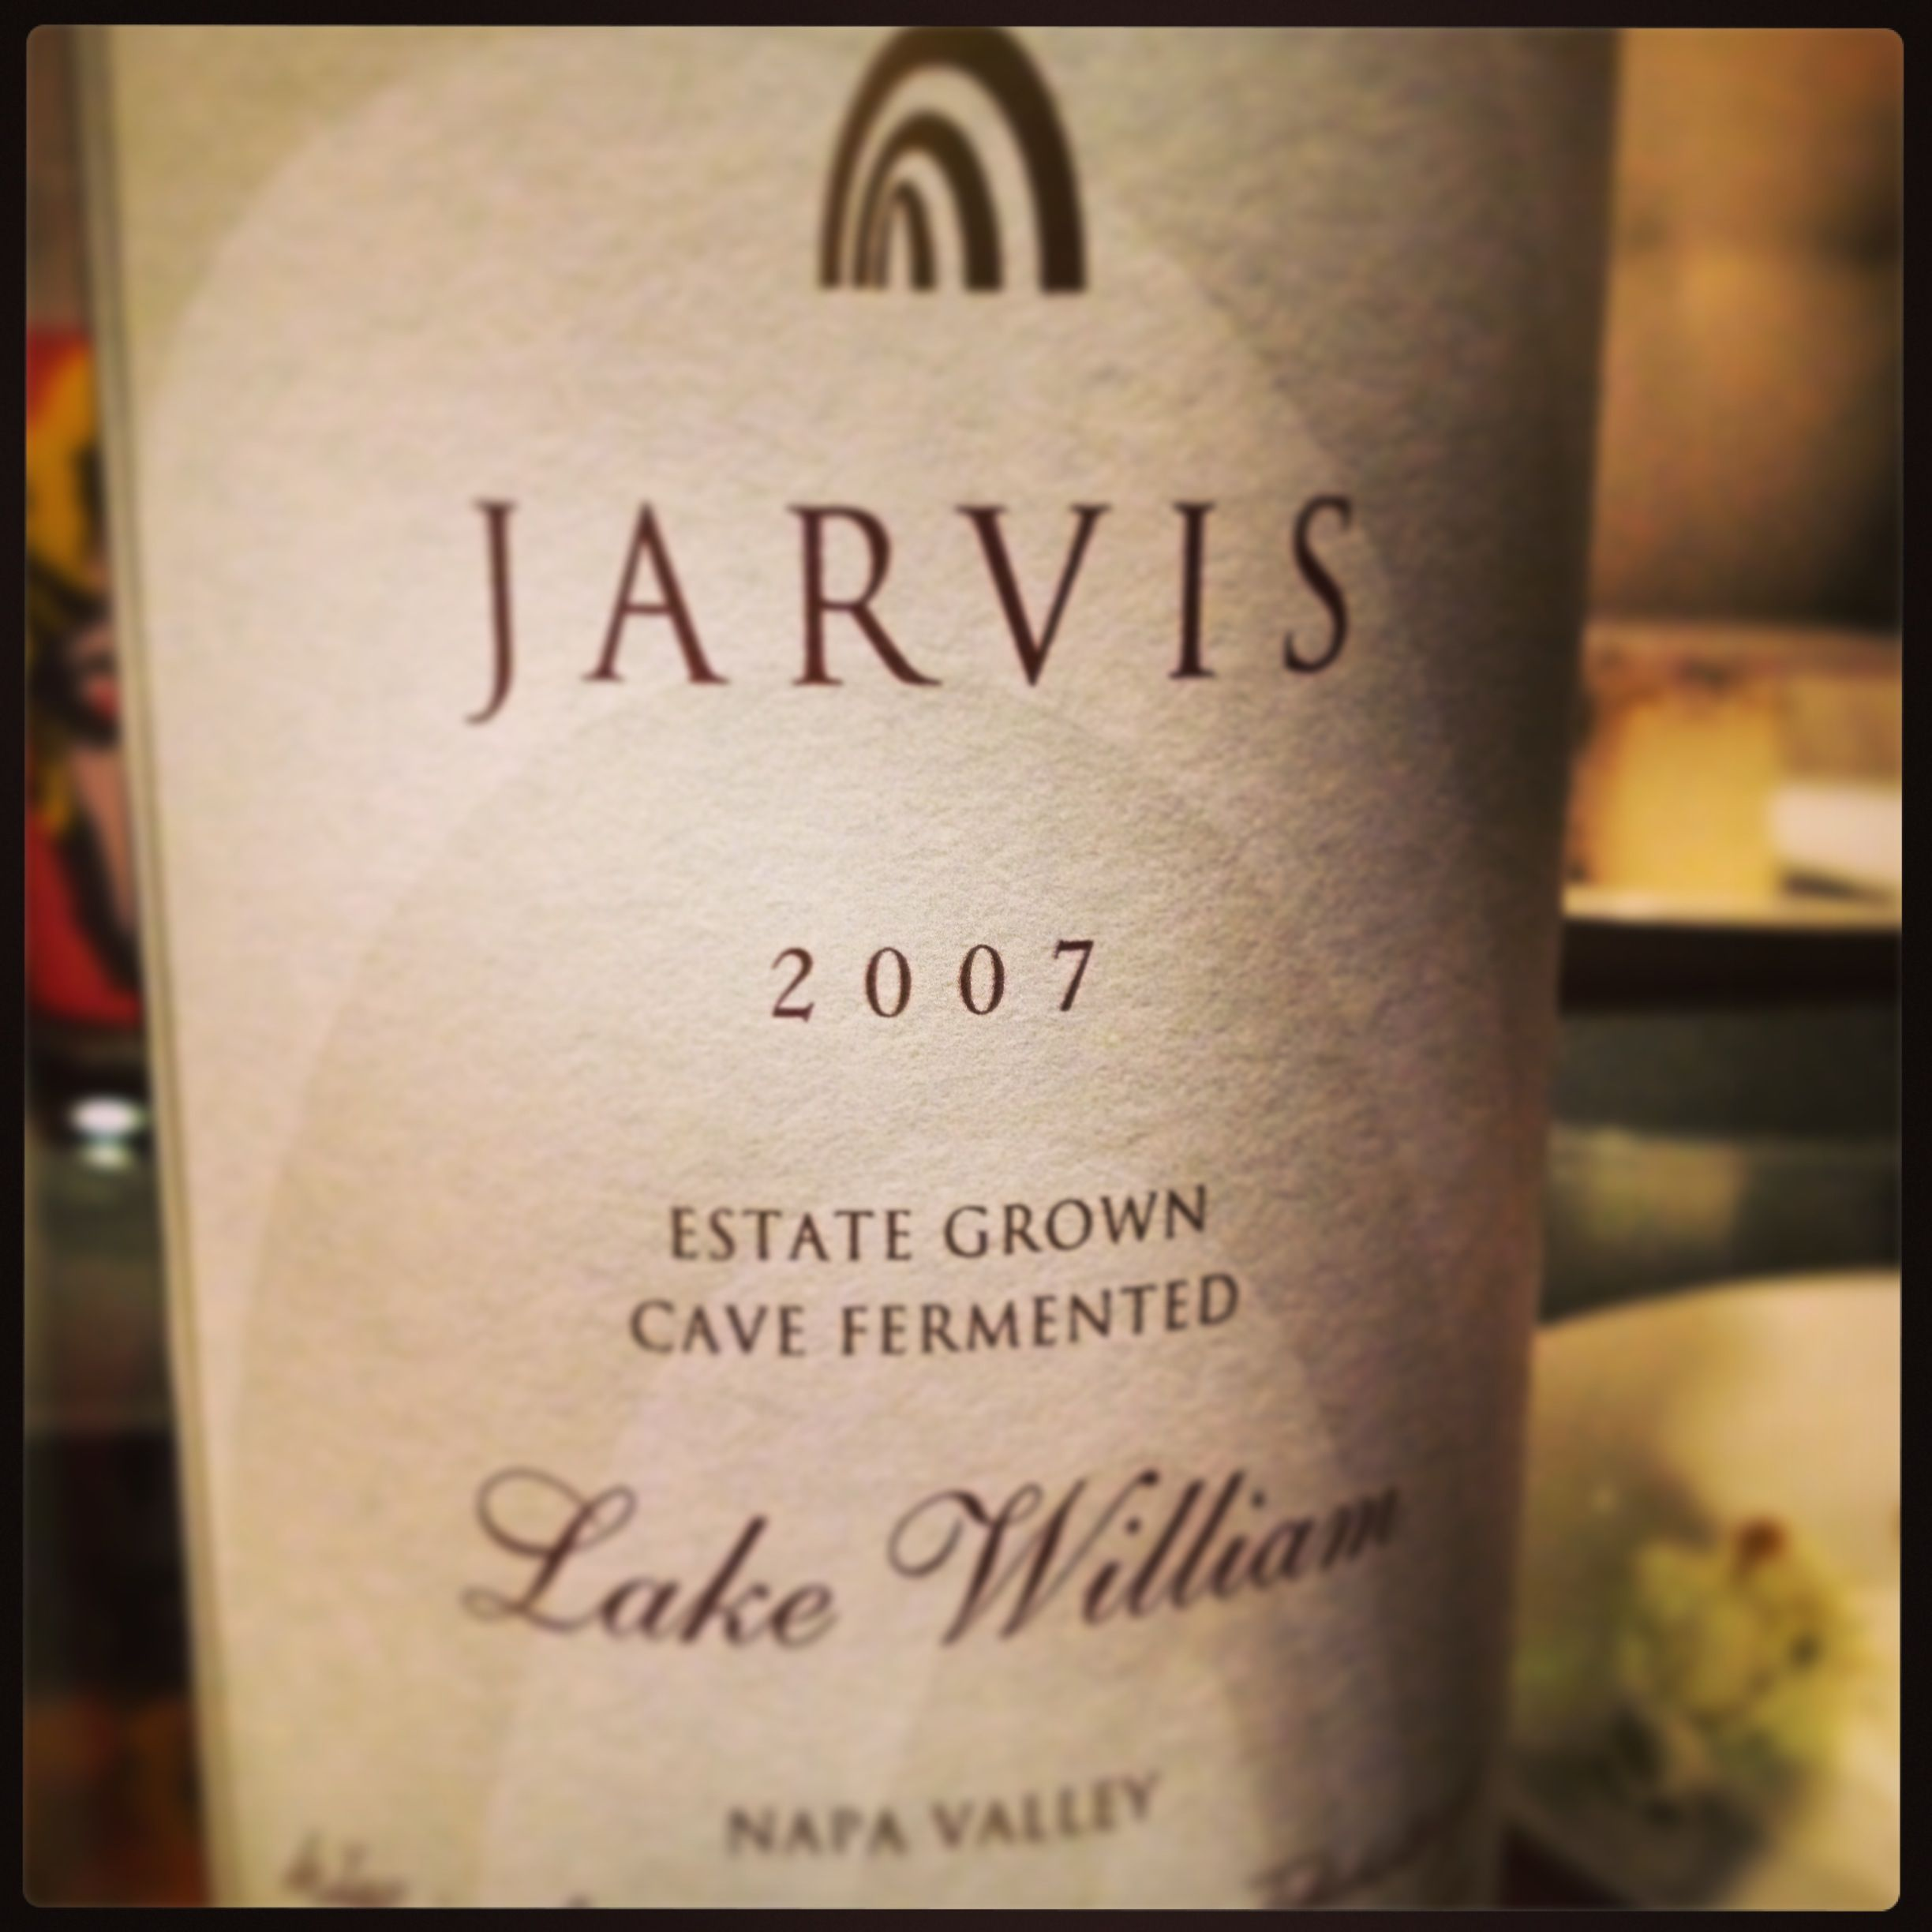 2007 Jarvis Lake William red blend (39% CS, 38% Merlot, 21% CF, 2%PV)  a very rich Napa blend with lots of flash, but substance of length and depth.